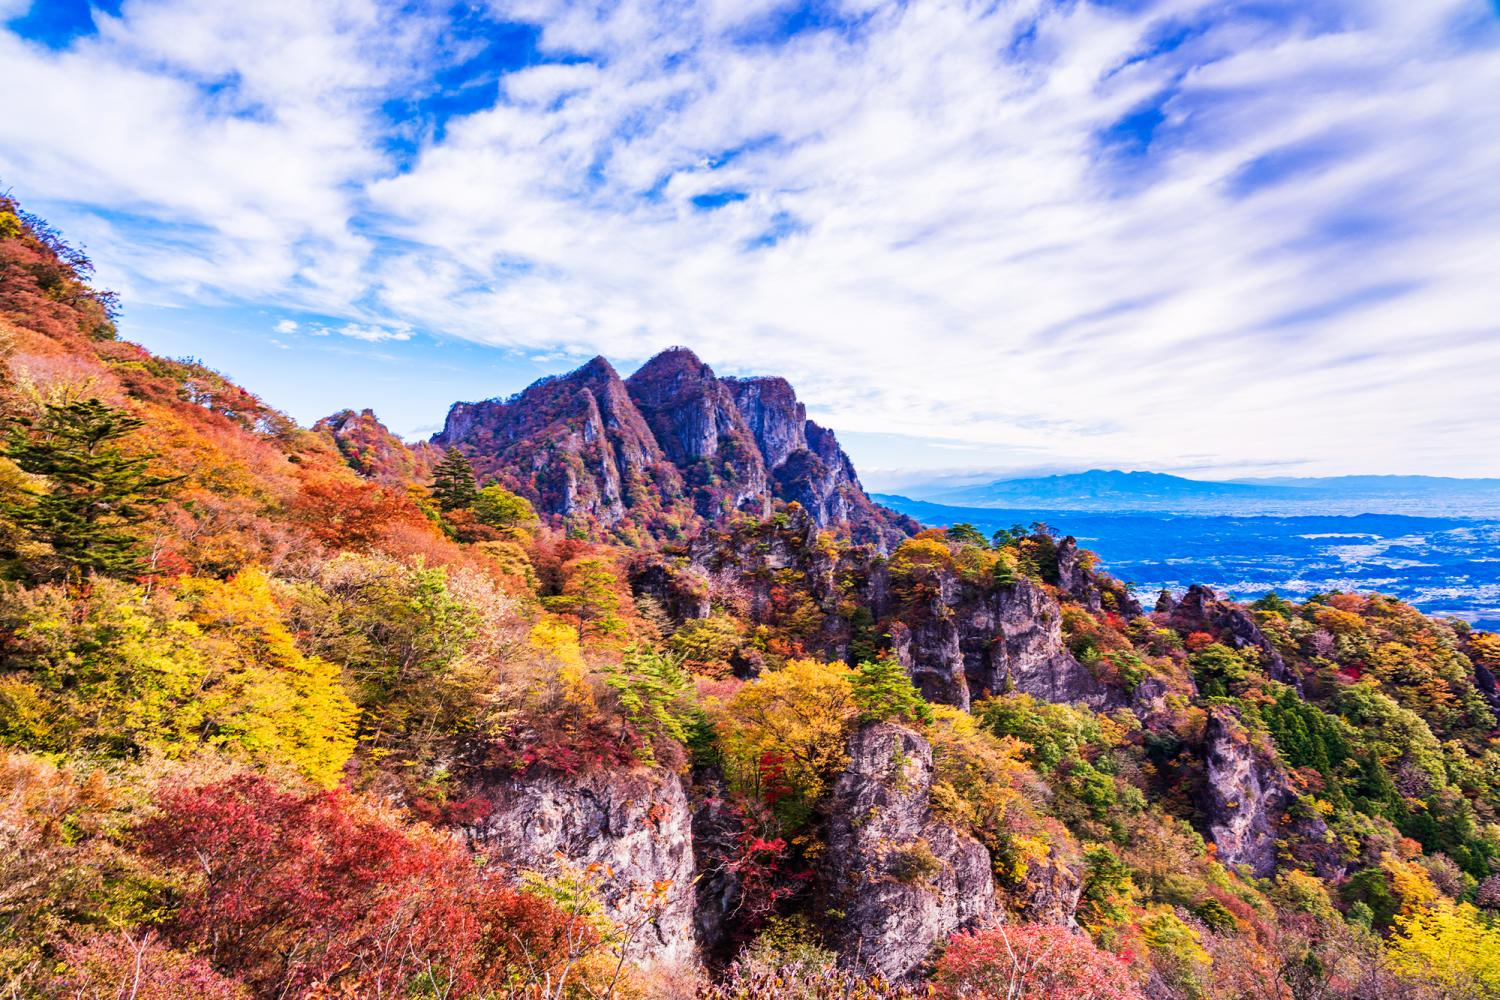 Autumn Leaves at Mt. Myogi